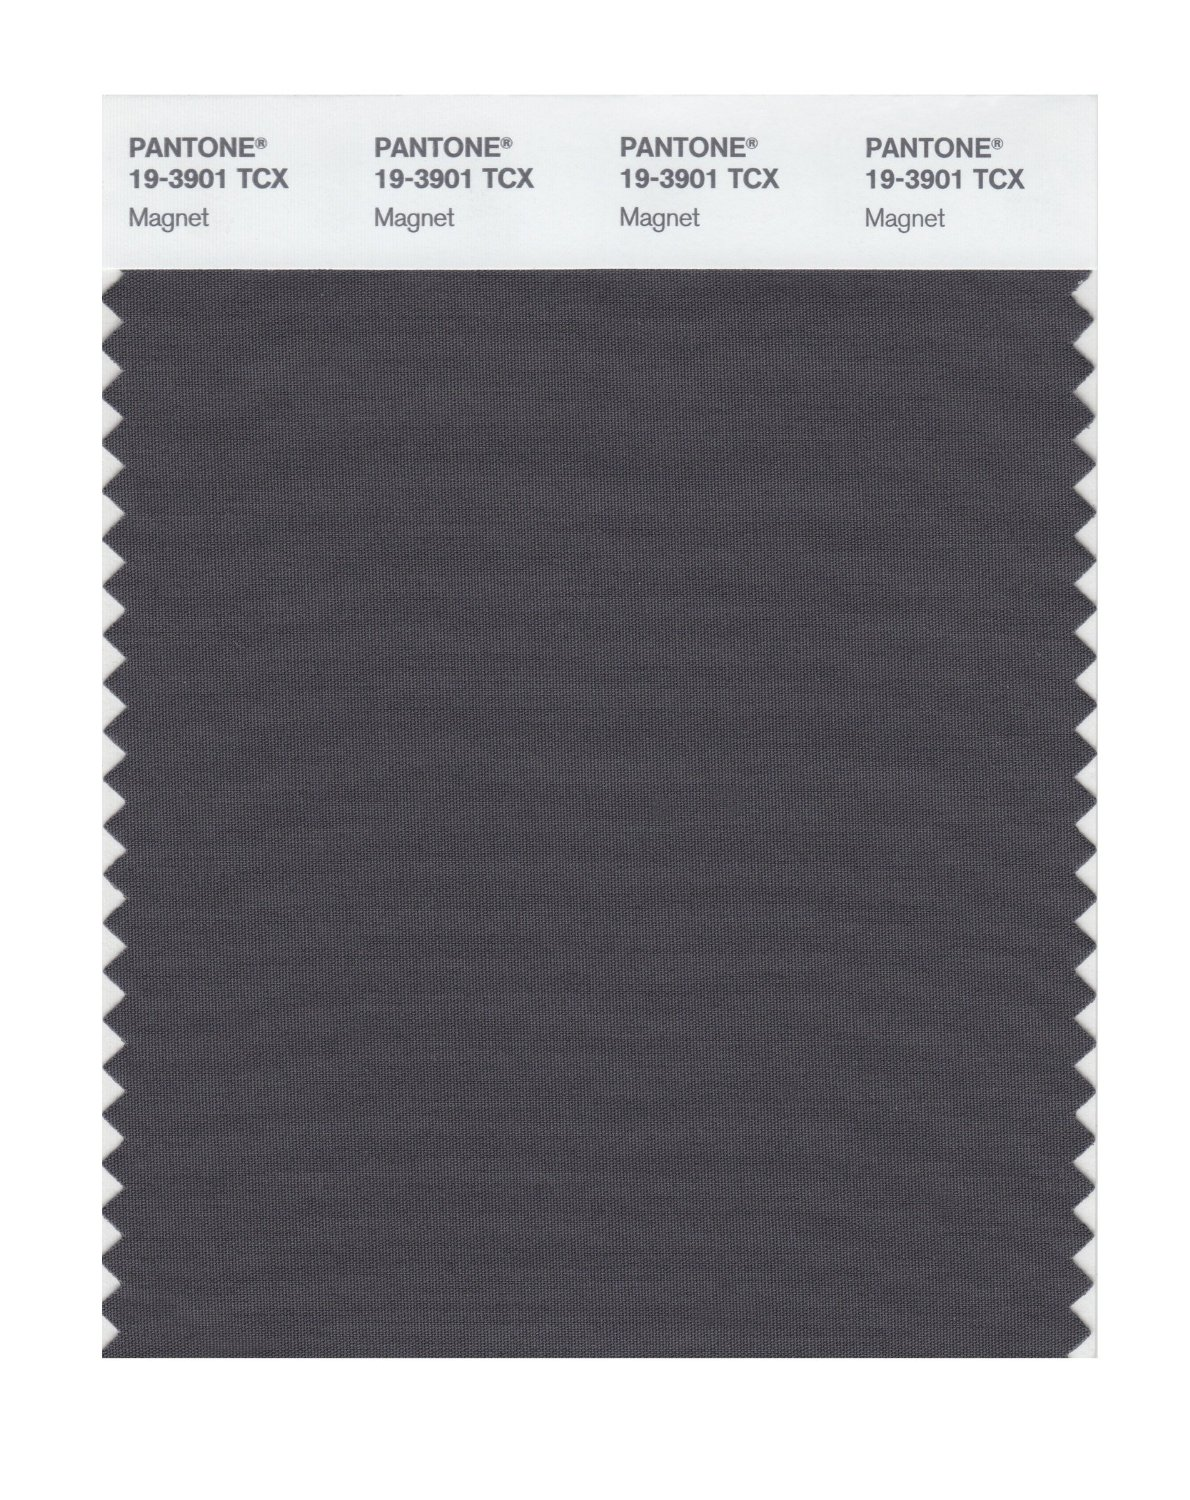 Pantone Smart Swatch 19-3901 Magnet